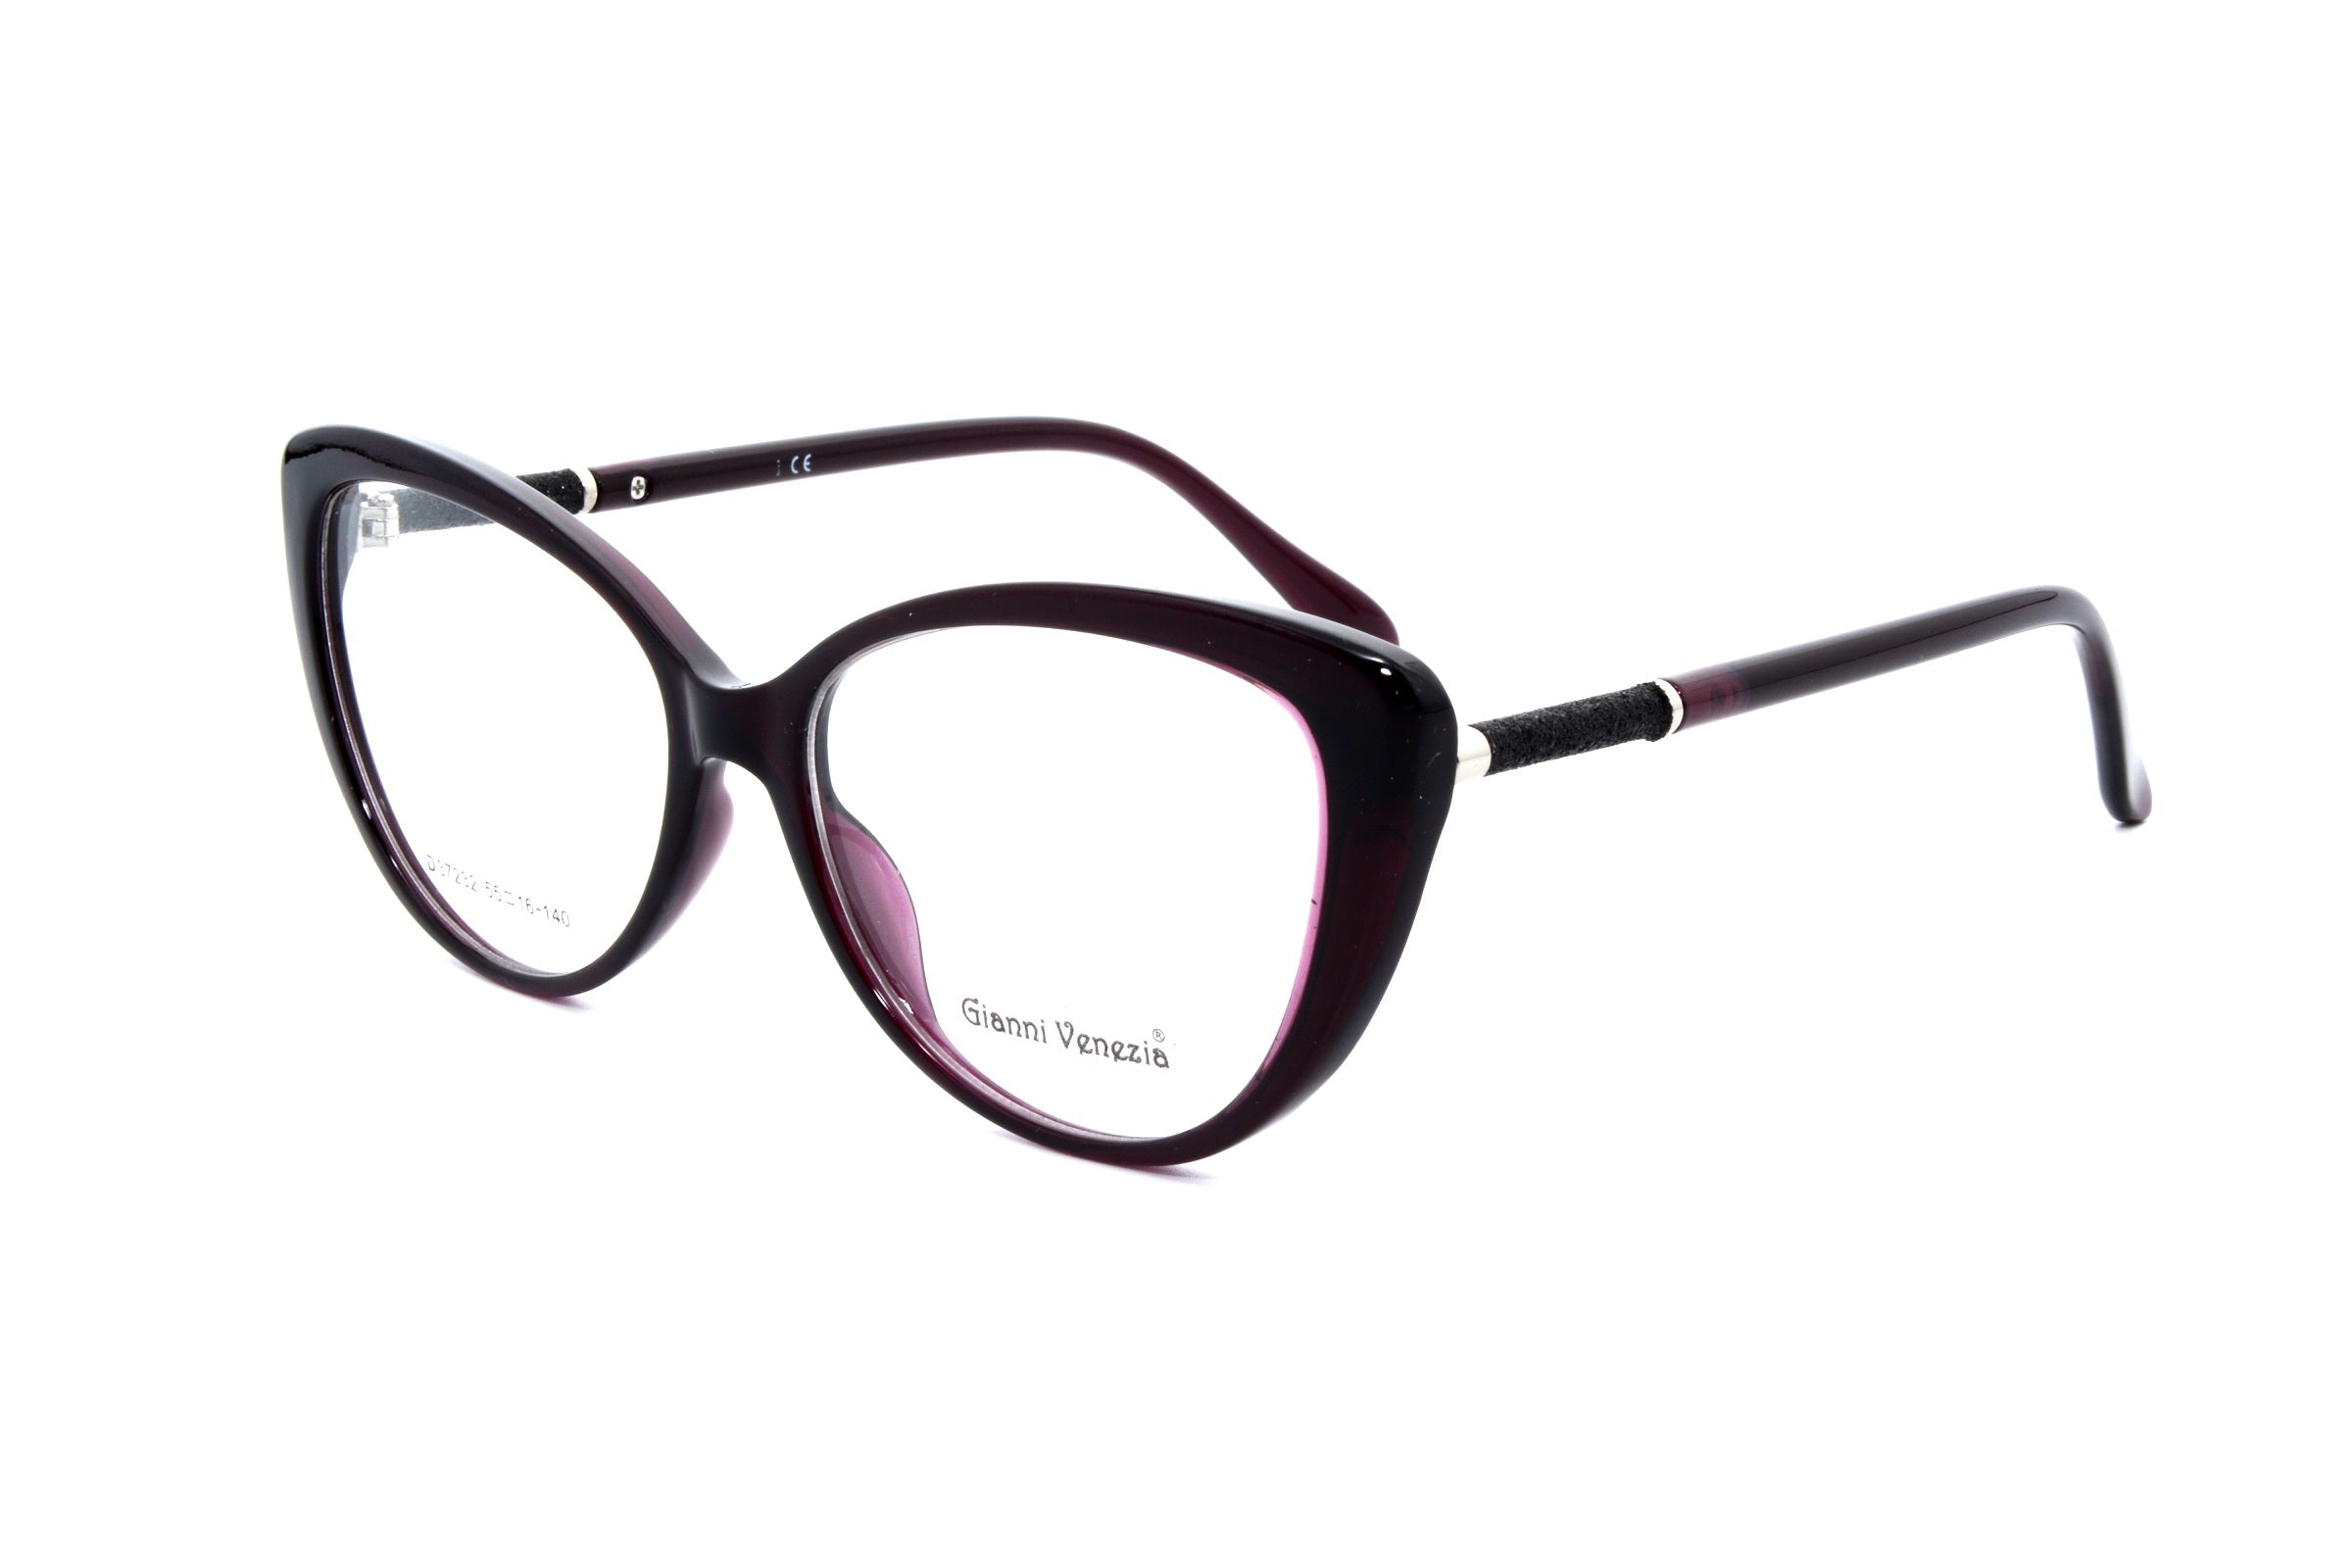 Gianni Vennezia eyewear 37232, C3 - Optics Trading